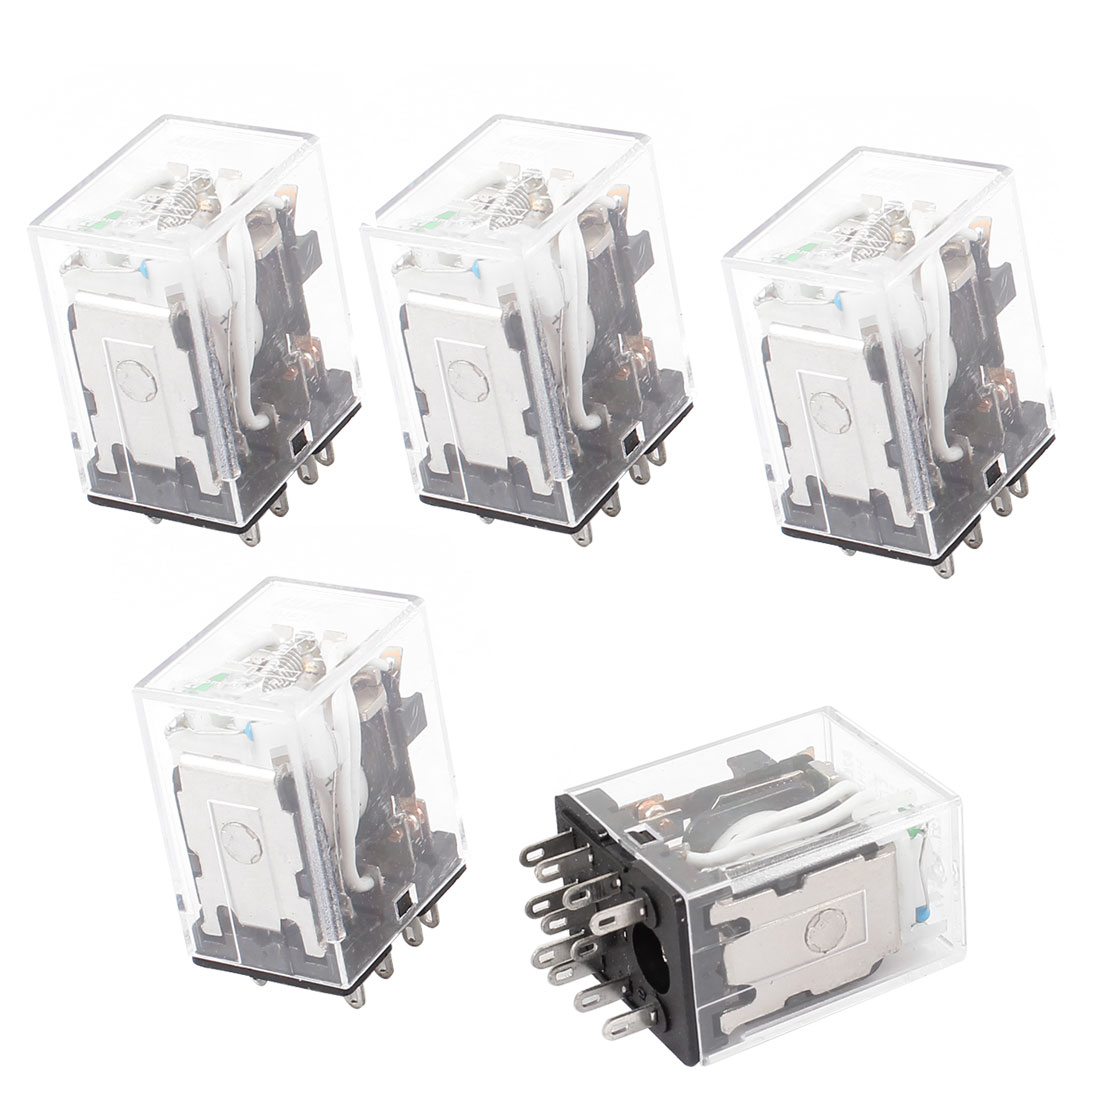 HH53PL DC 12V Coil 11 Pins 3PDT Green LED Indicator Lamp Power Relay 5 Pcs